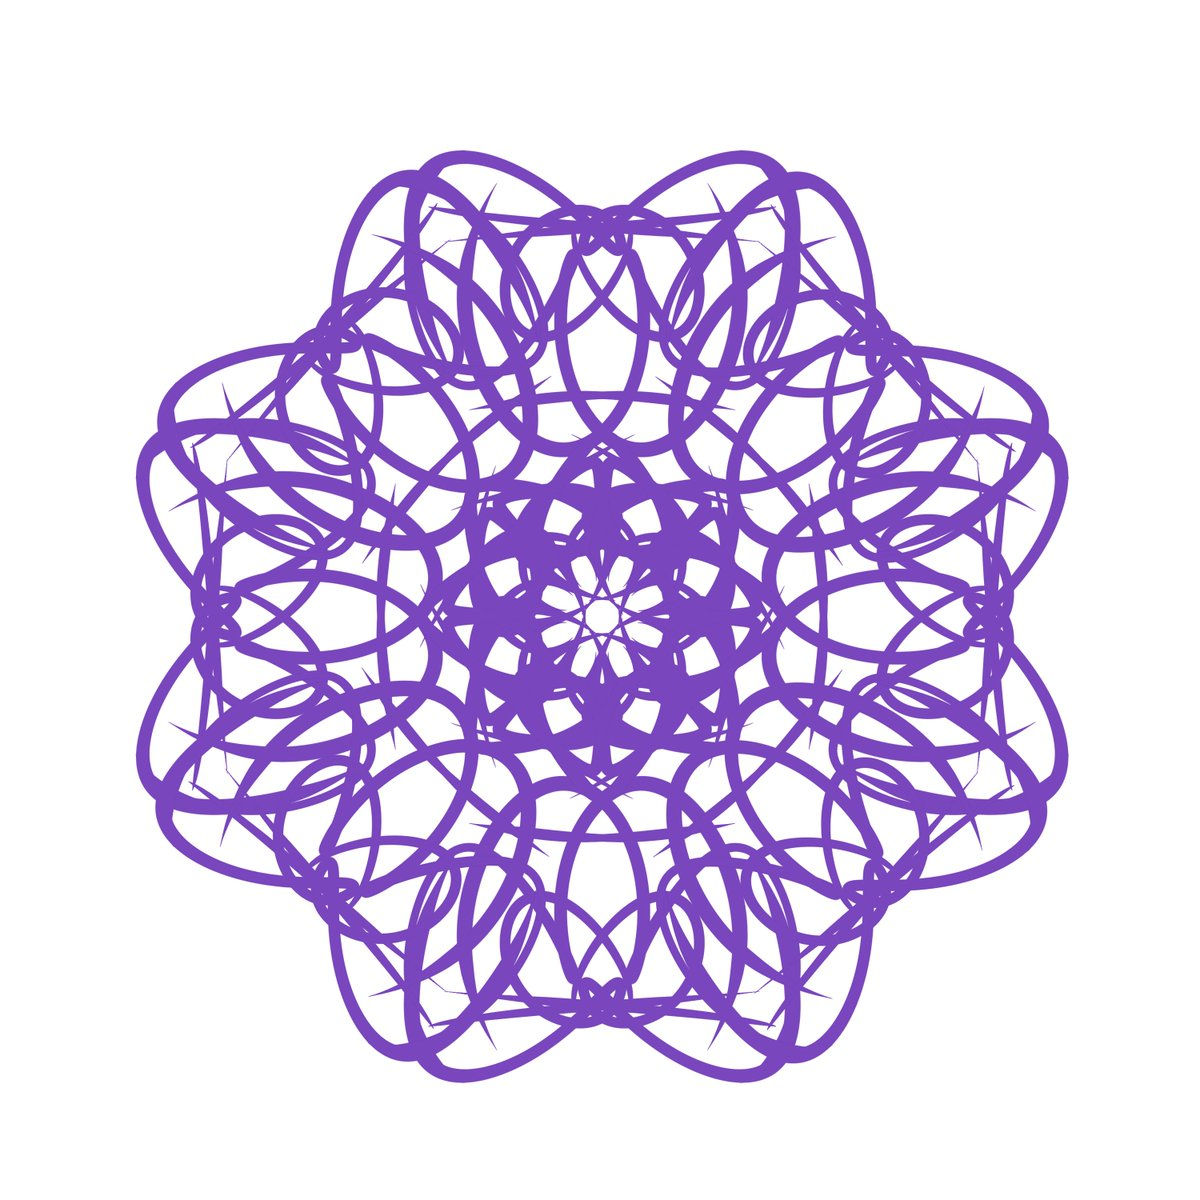 Ok, I made these doilies using the name Braig. They're cool, right? 😆 #doilies #PaintToolSAI #Braig